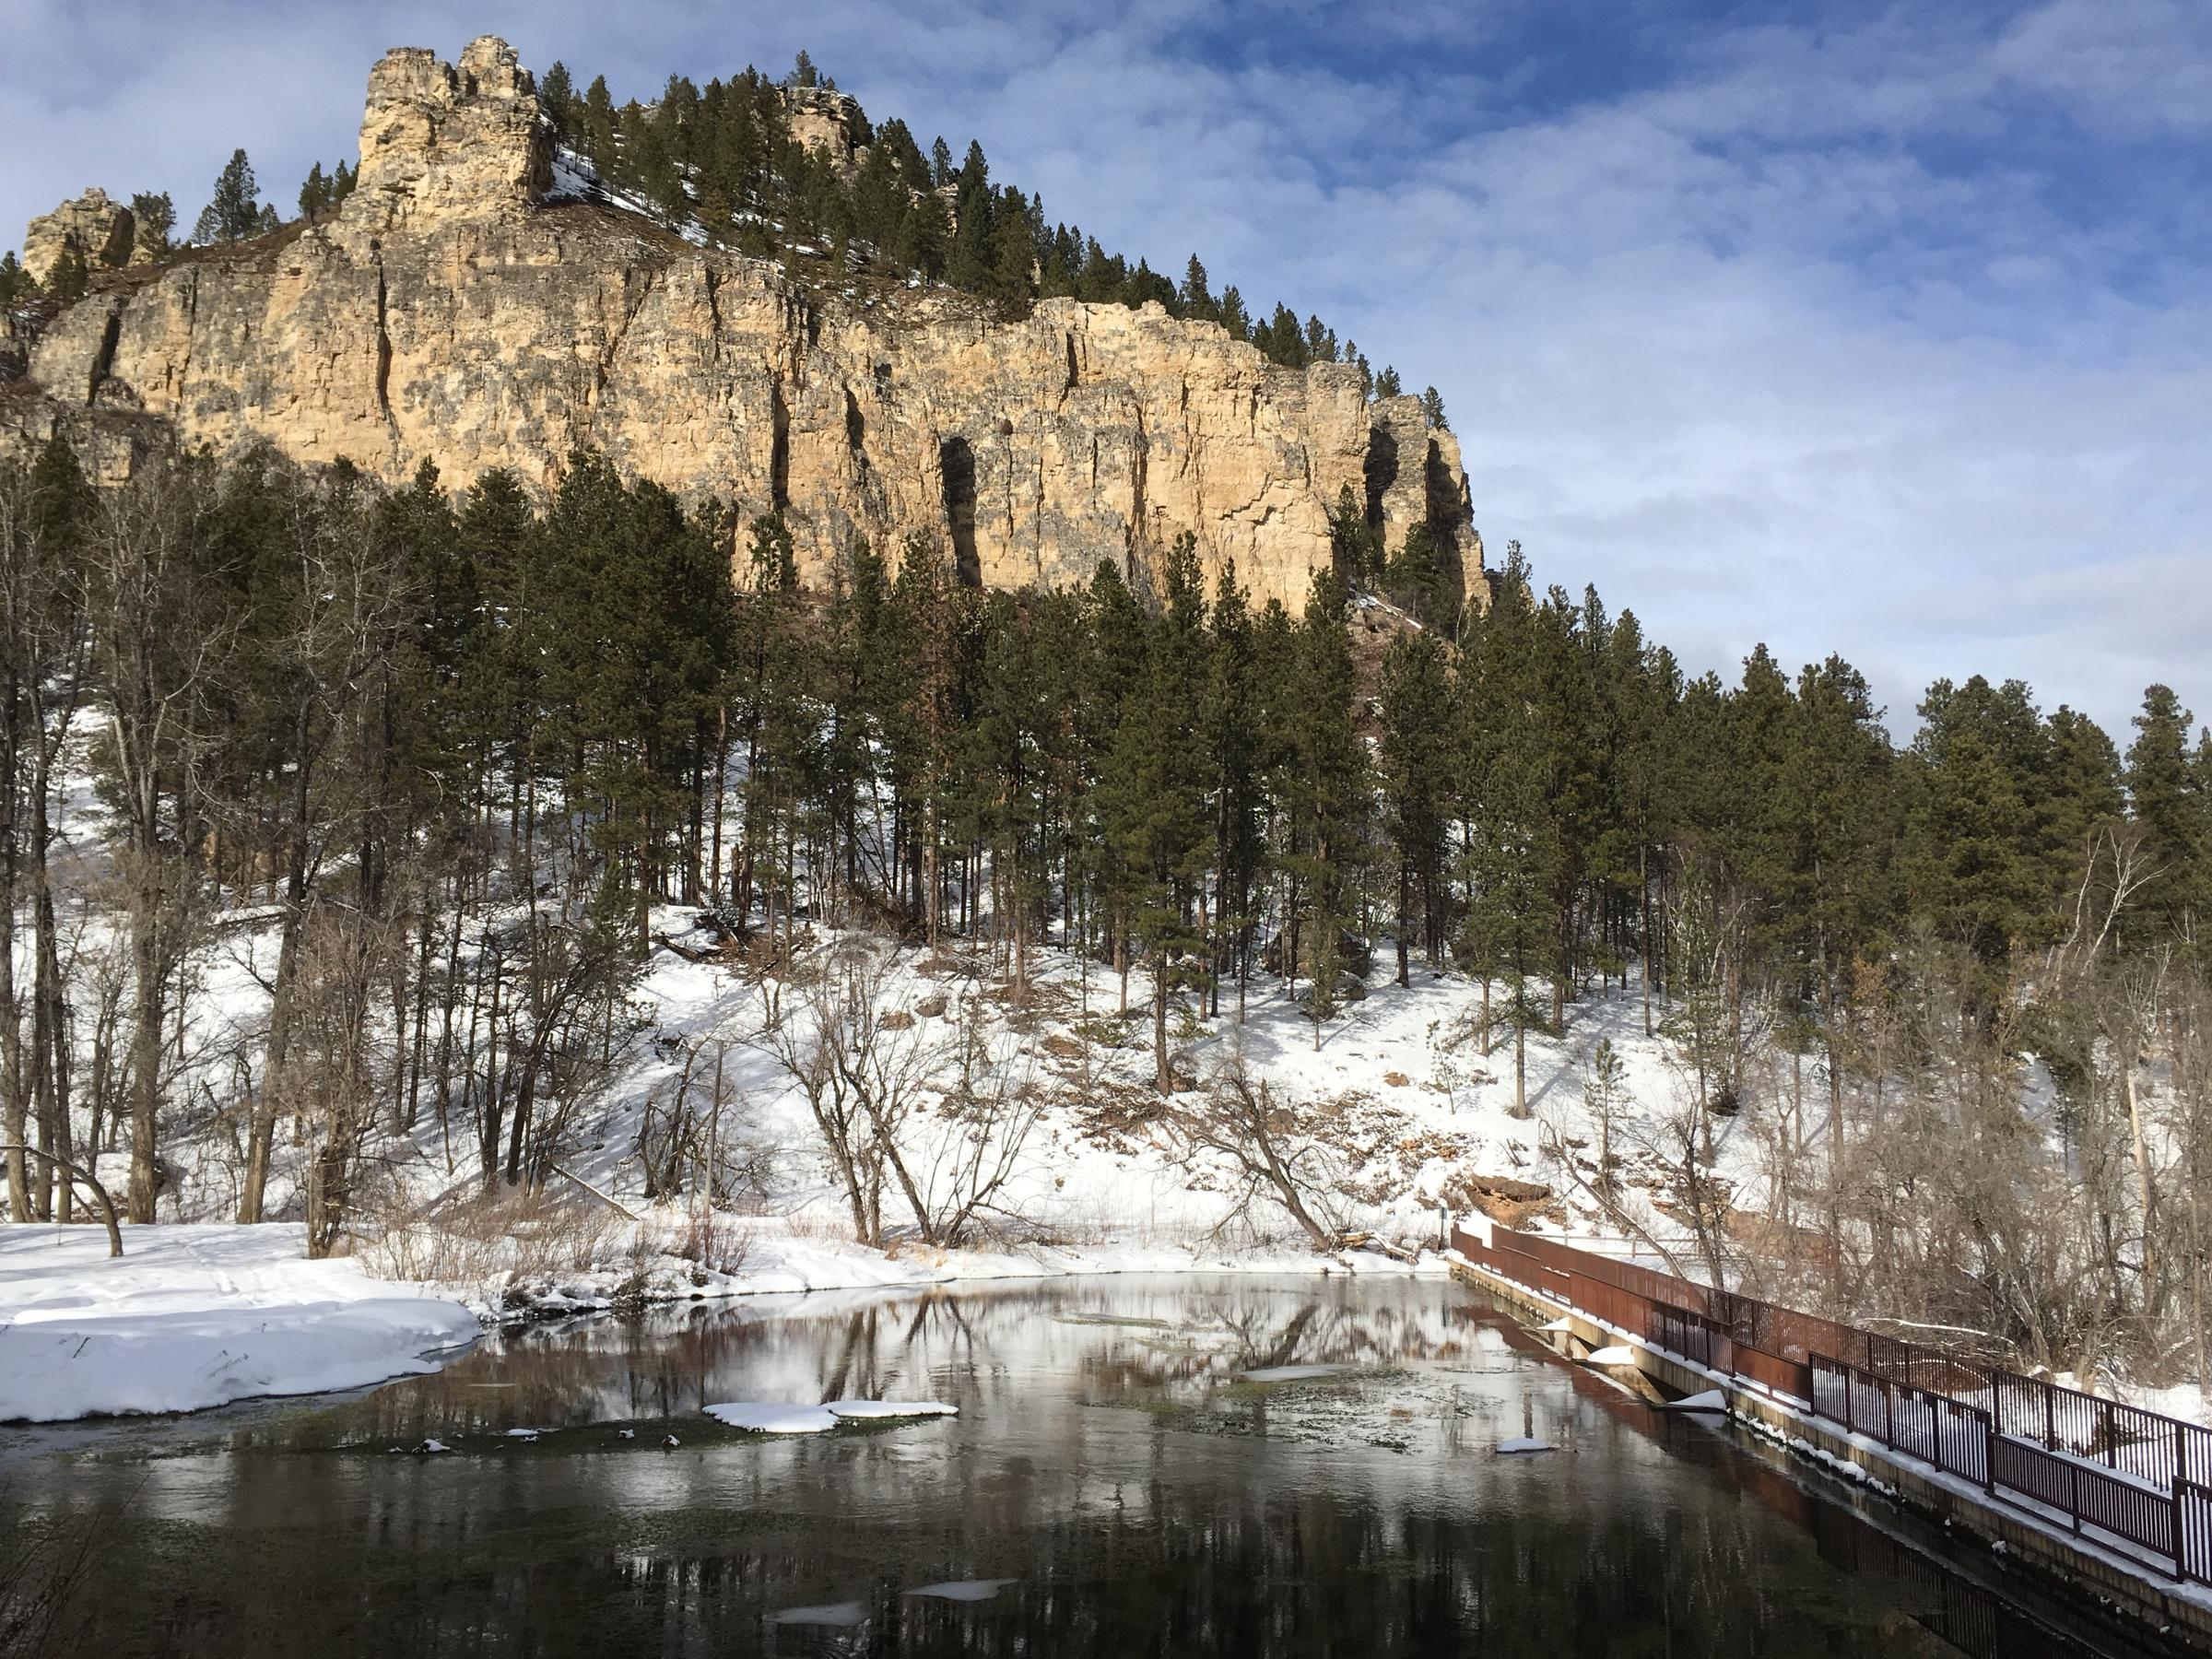 Spearfish Canyon Land Swap Proposal Only The Beginning